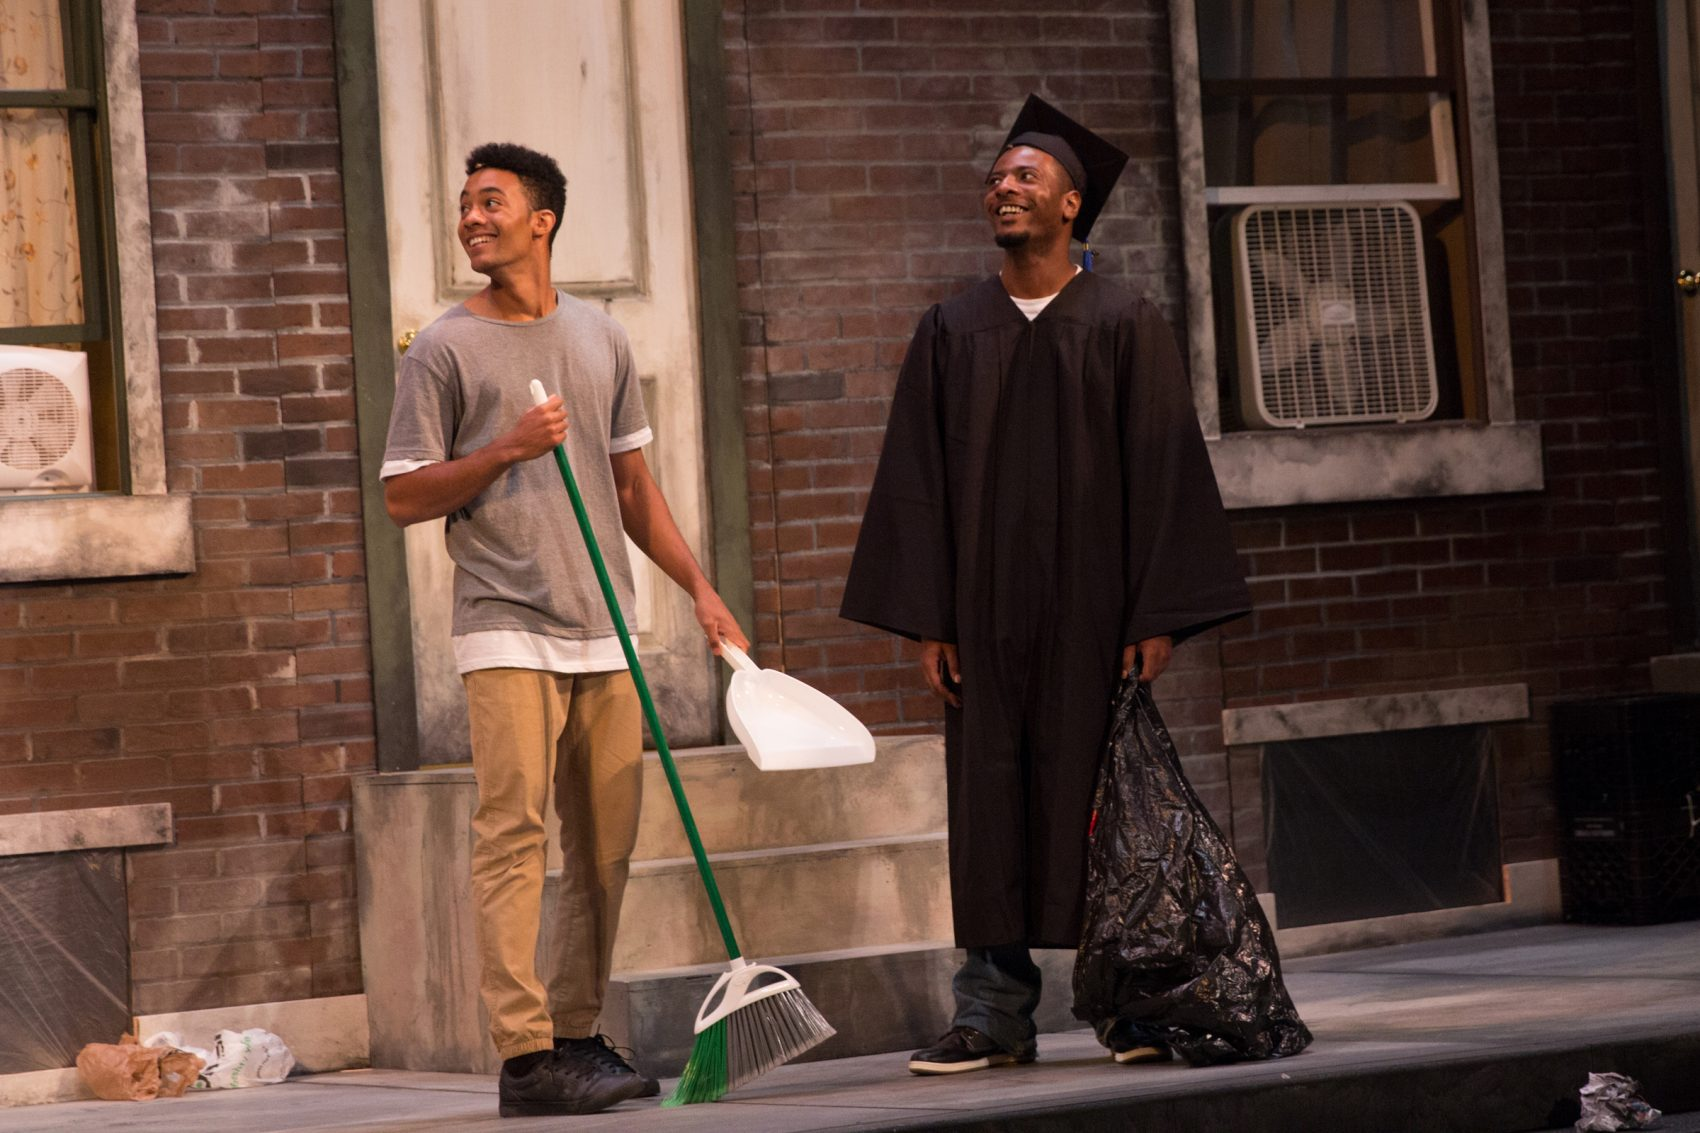 two actors on a porch, one holding a broom, and the other in a cap and gown holding a trash bag.